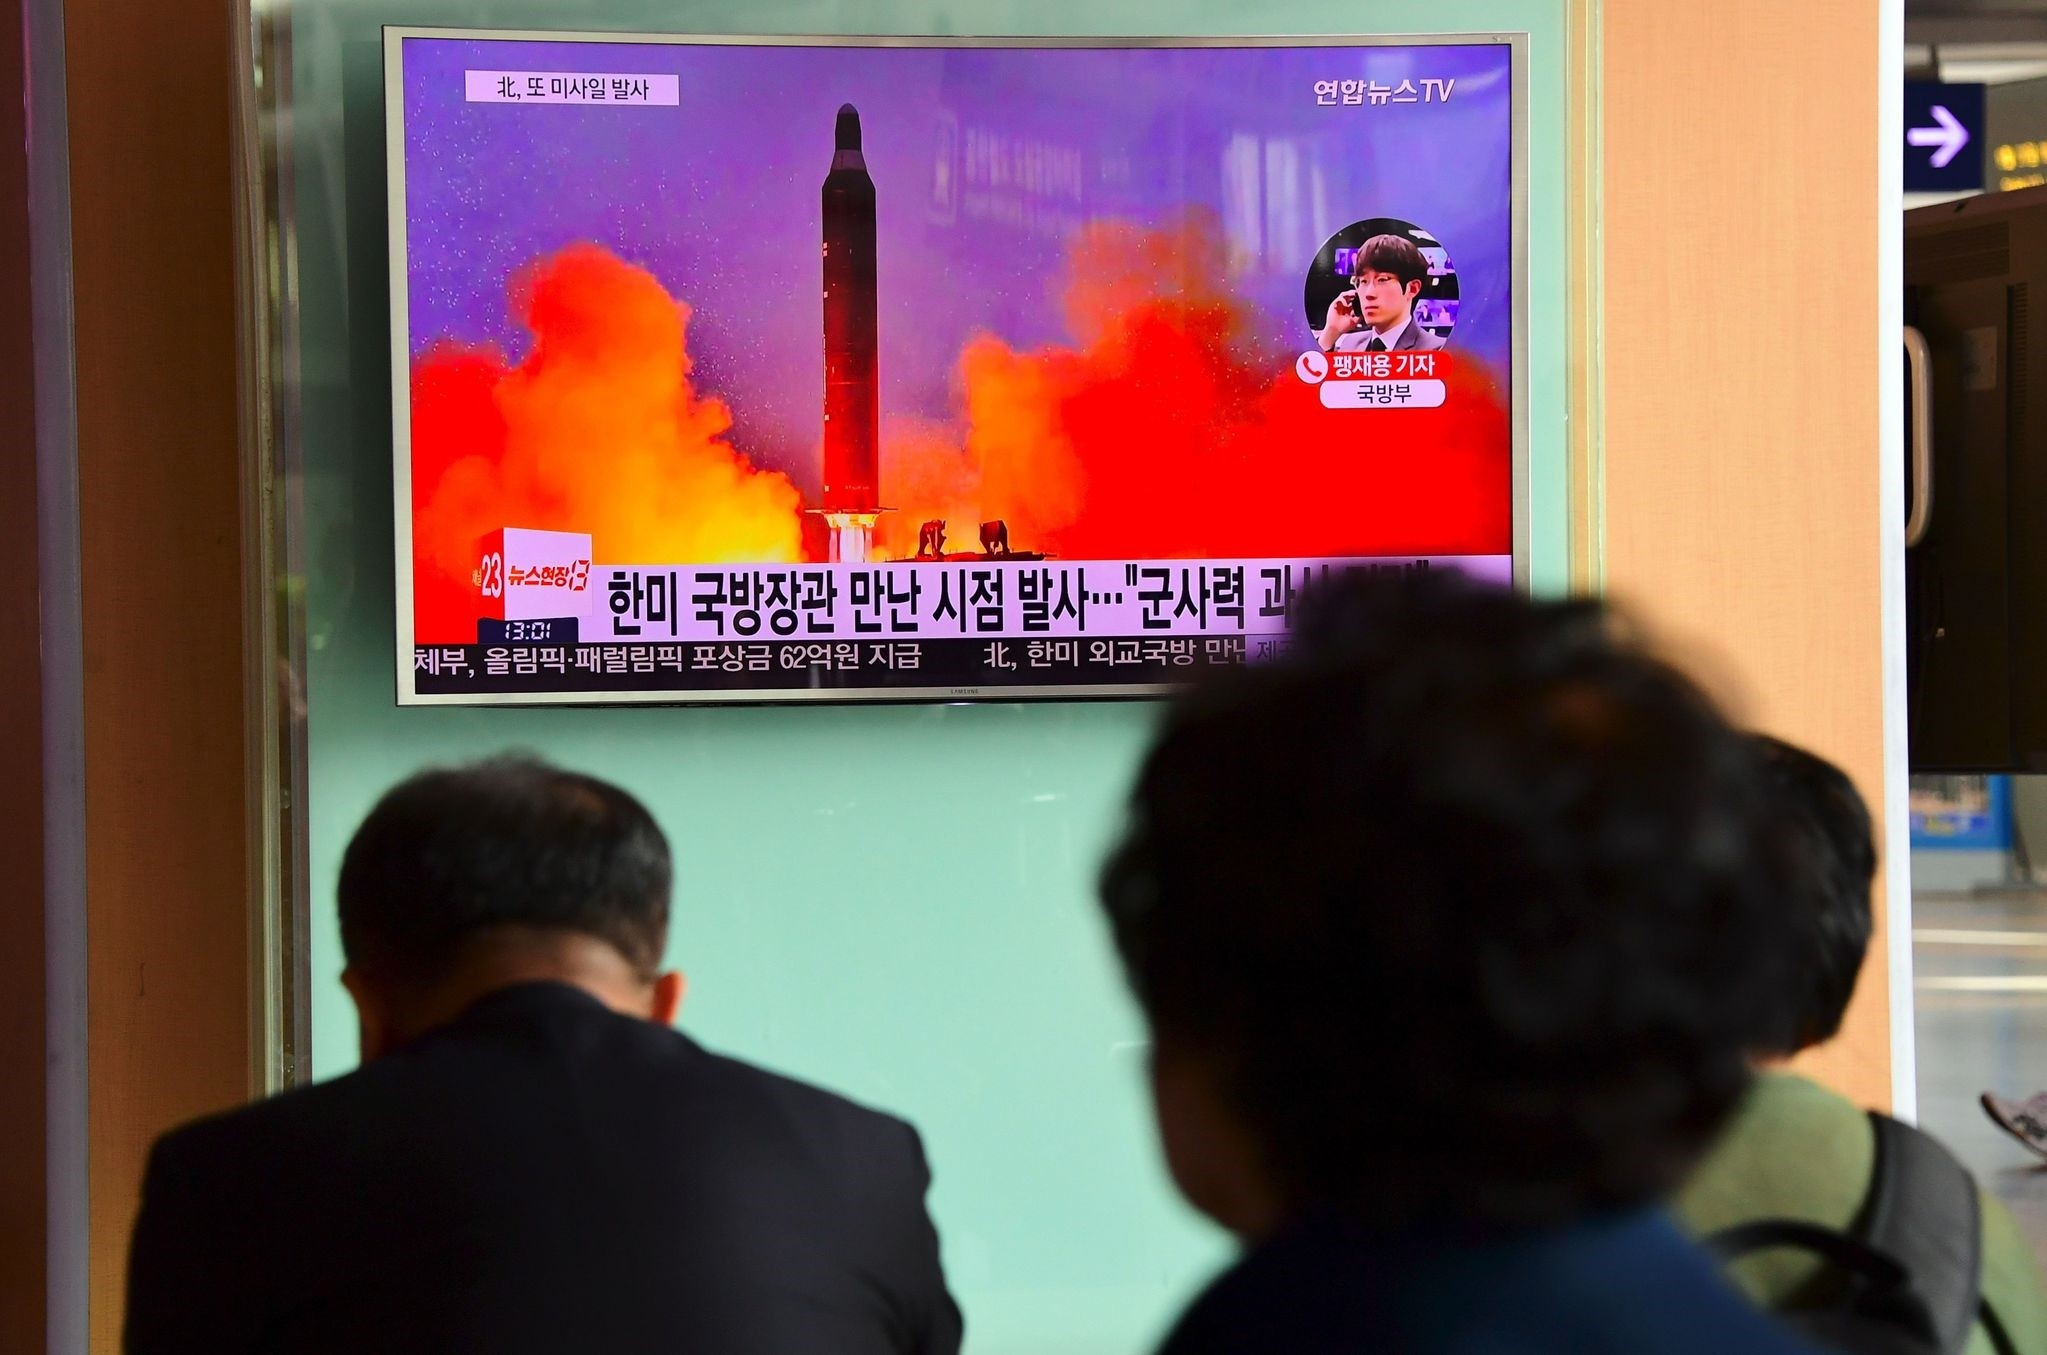 People watch a television news report showing file footage of North Korea's missile launch at a railway station in Seoul on October 20, 2016. (AFP Photo)